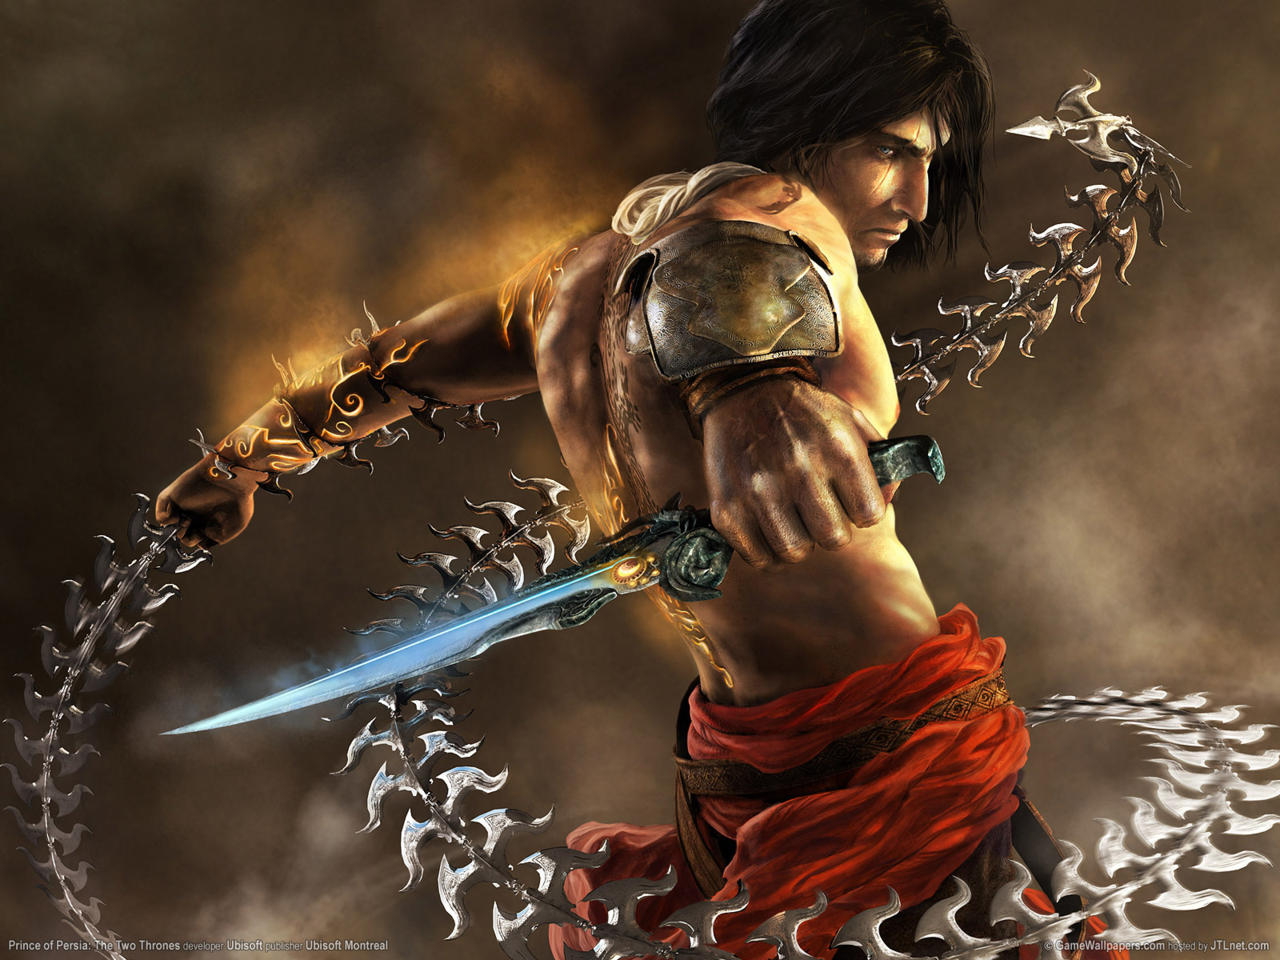 10. Time Dagger - Prince of Persia